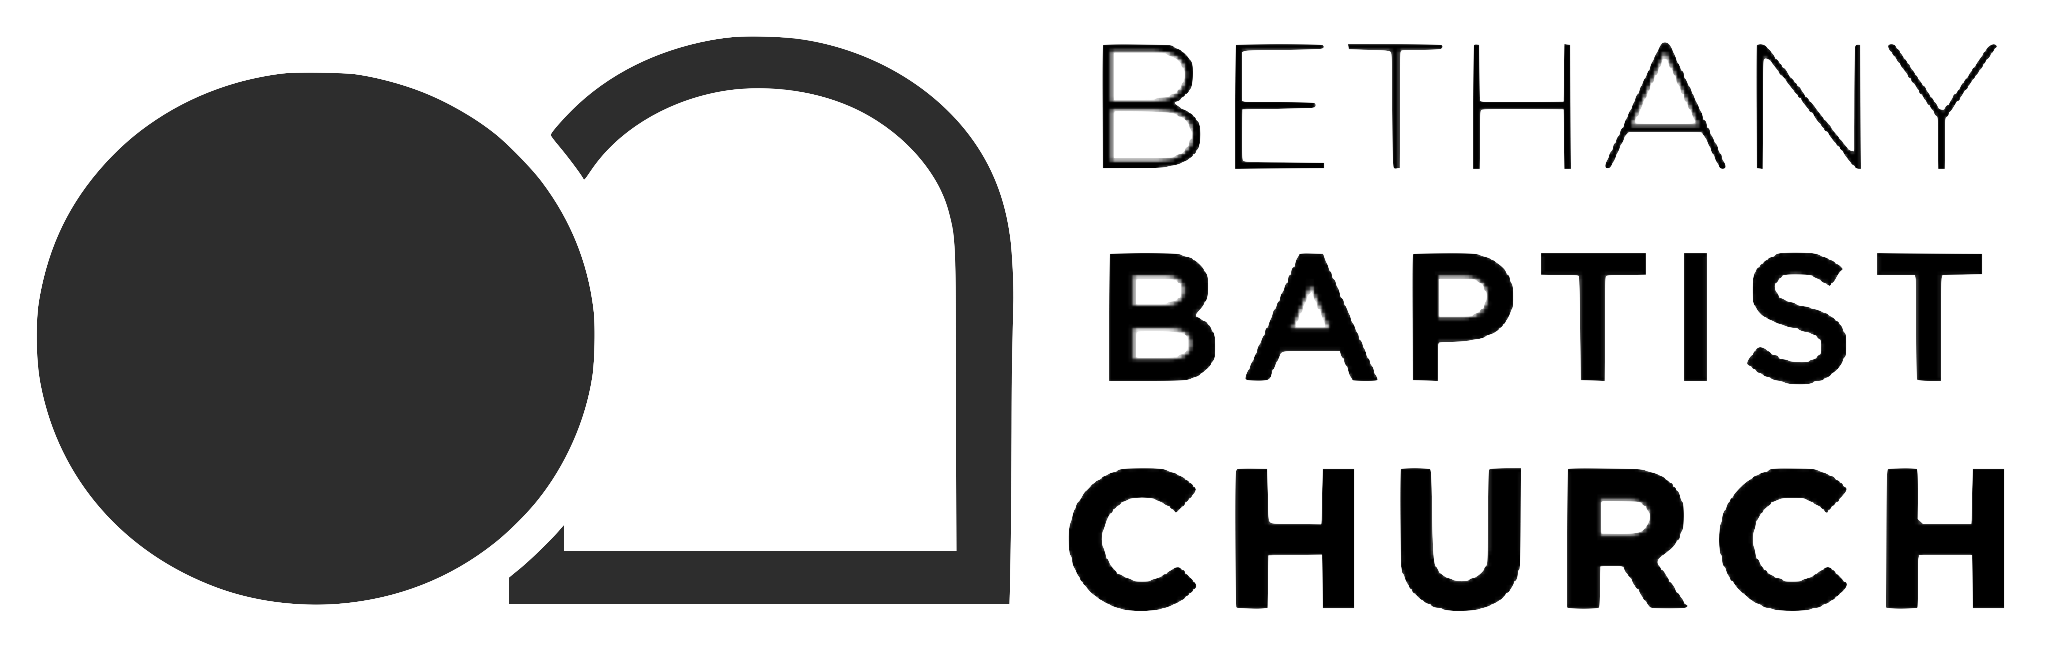 BBC Logo icon with name stacked higher quality – Bethany Baptist Church